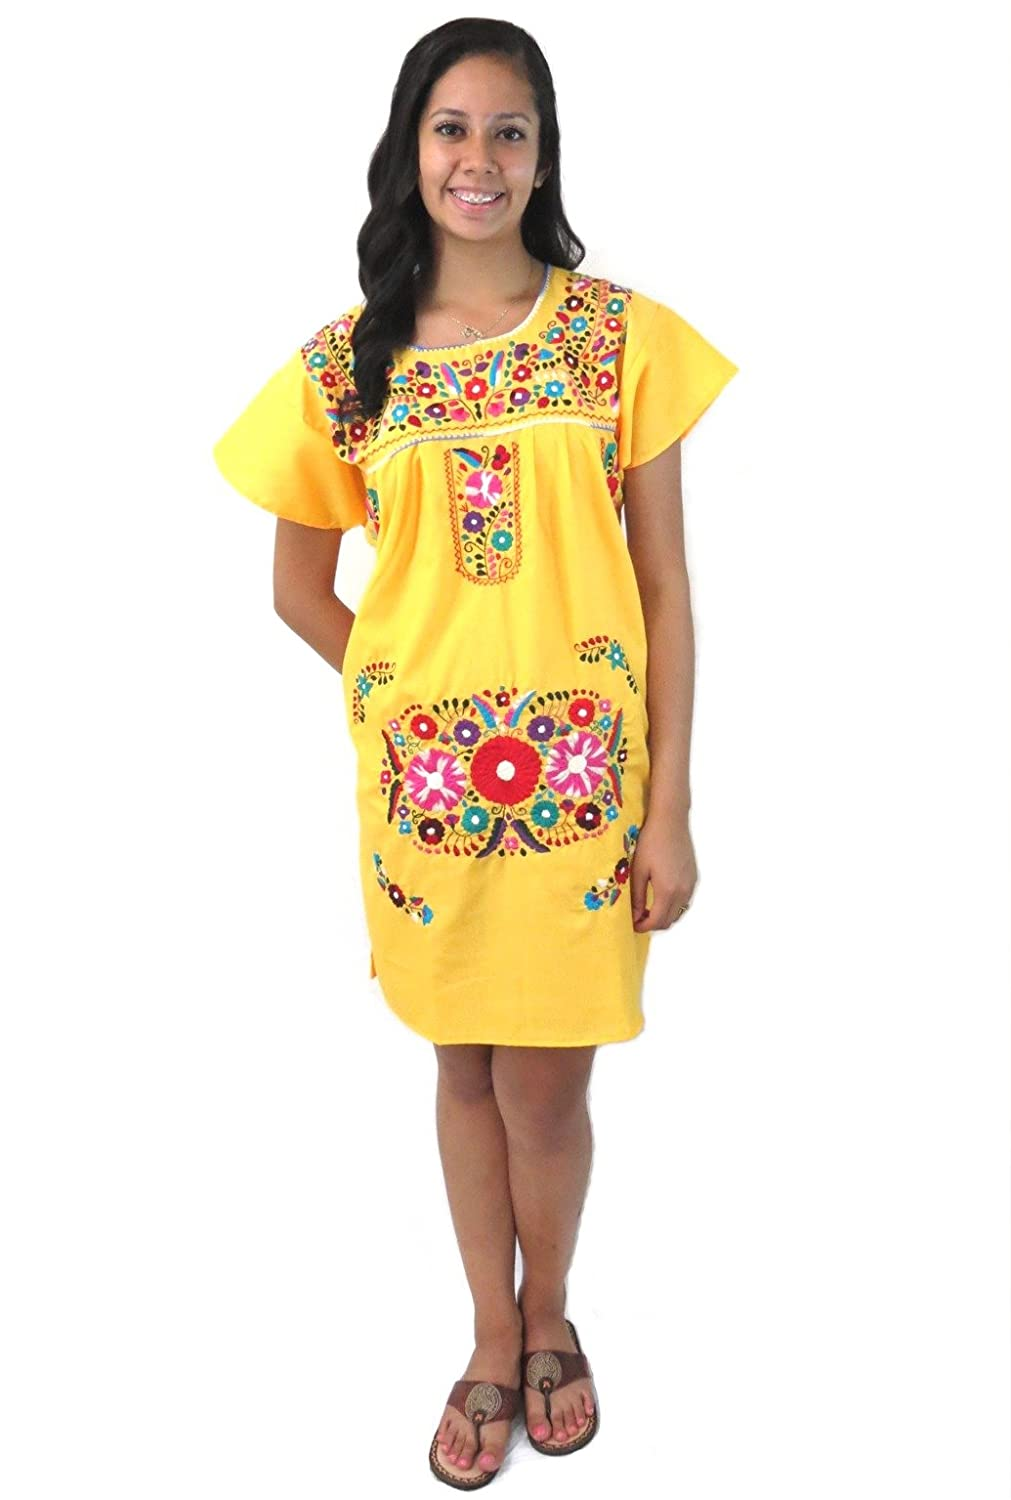 Embroidered Canary Yellow Mexican Puebla Tunic Dress - DeluxeAdultCostumes.com